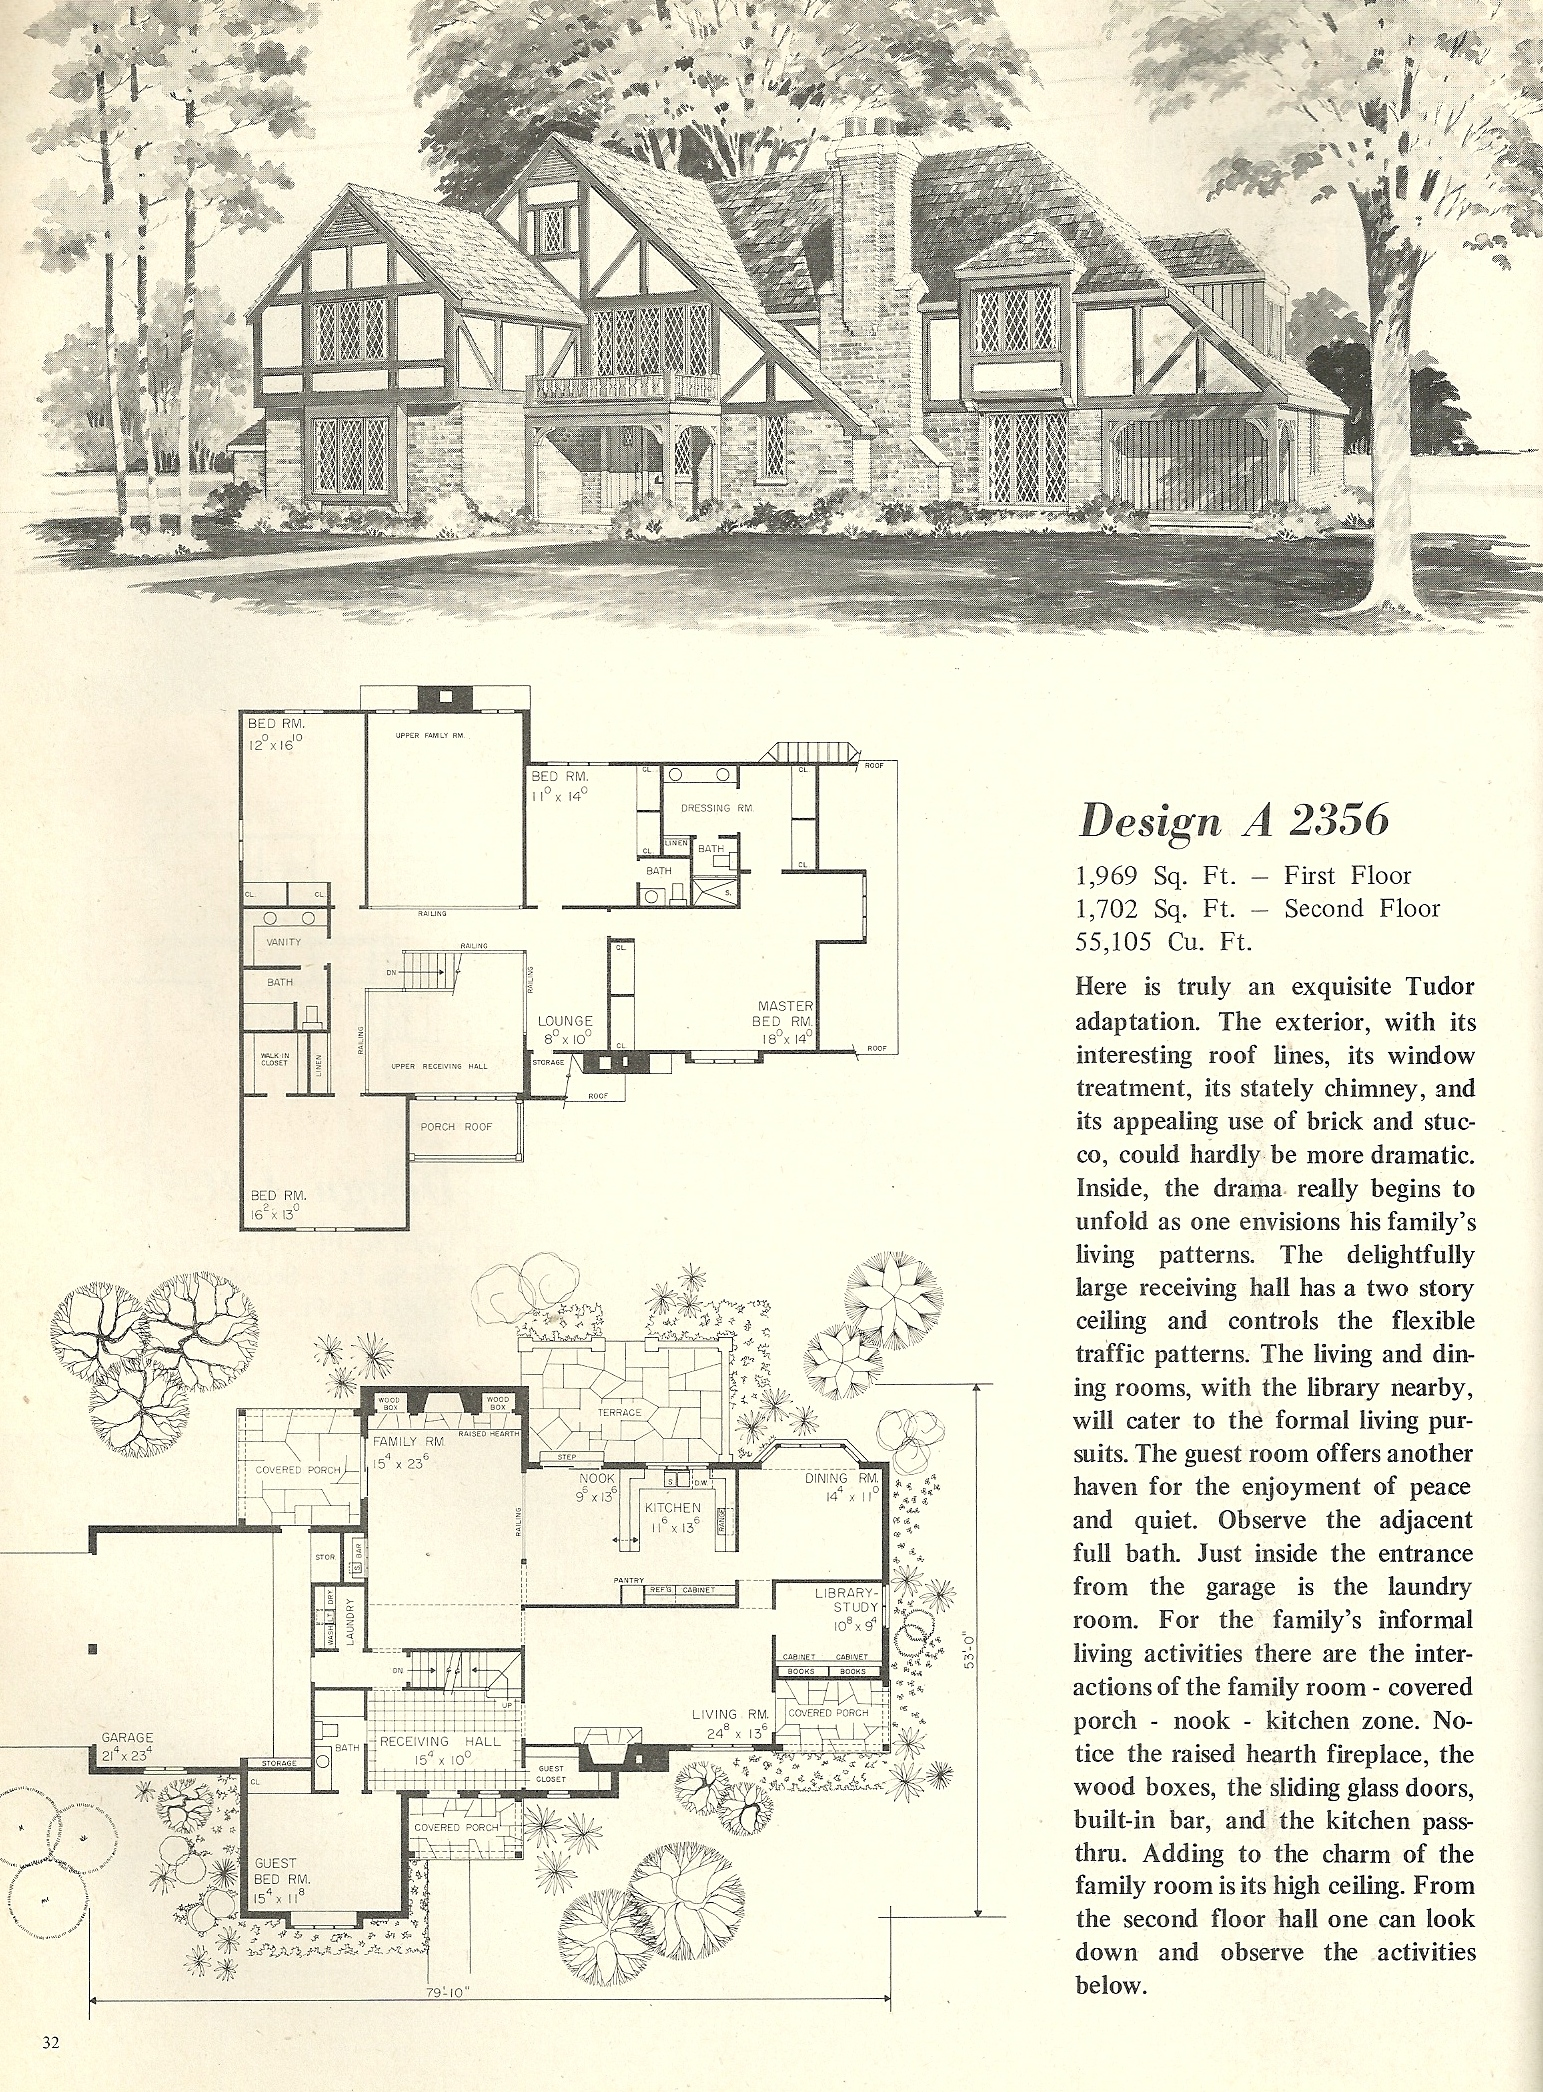 Vintage house plans 2356 antique alter ego for New houses that look old plans